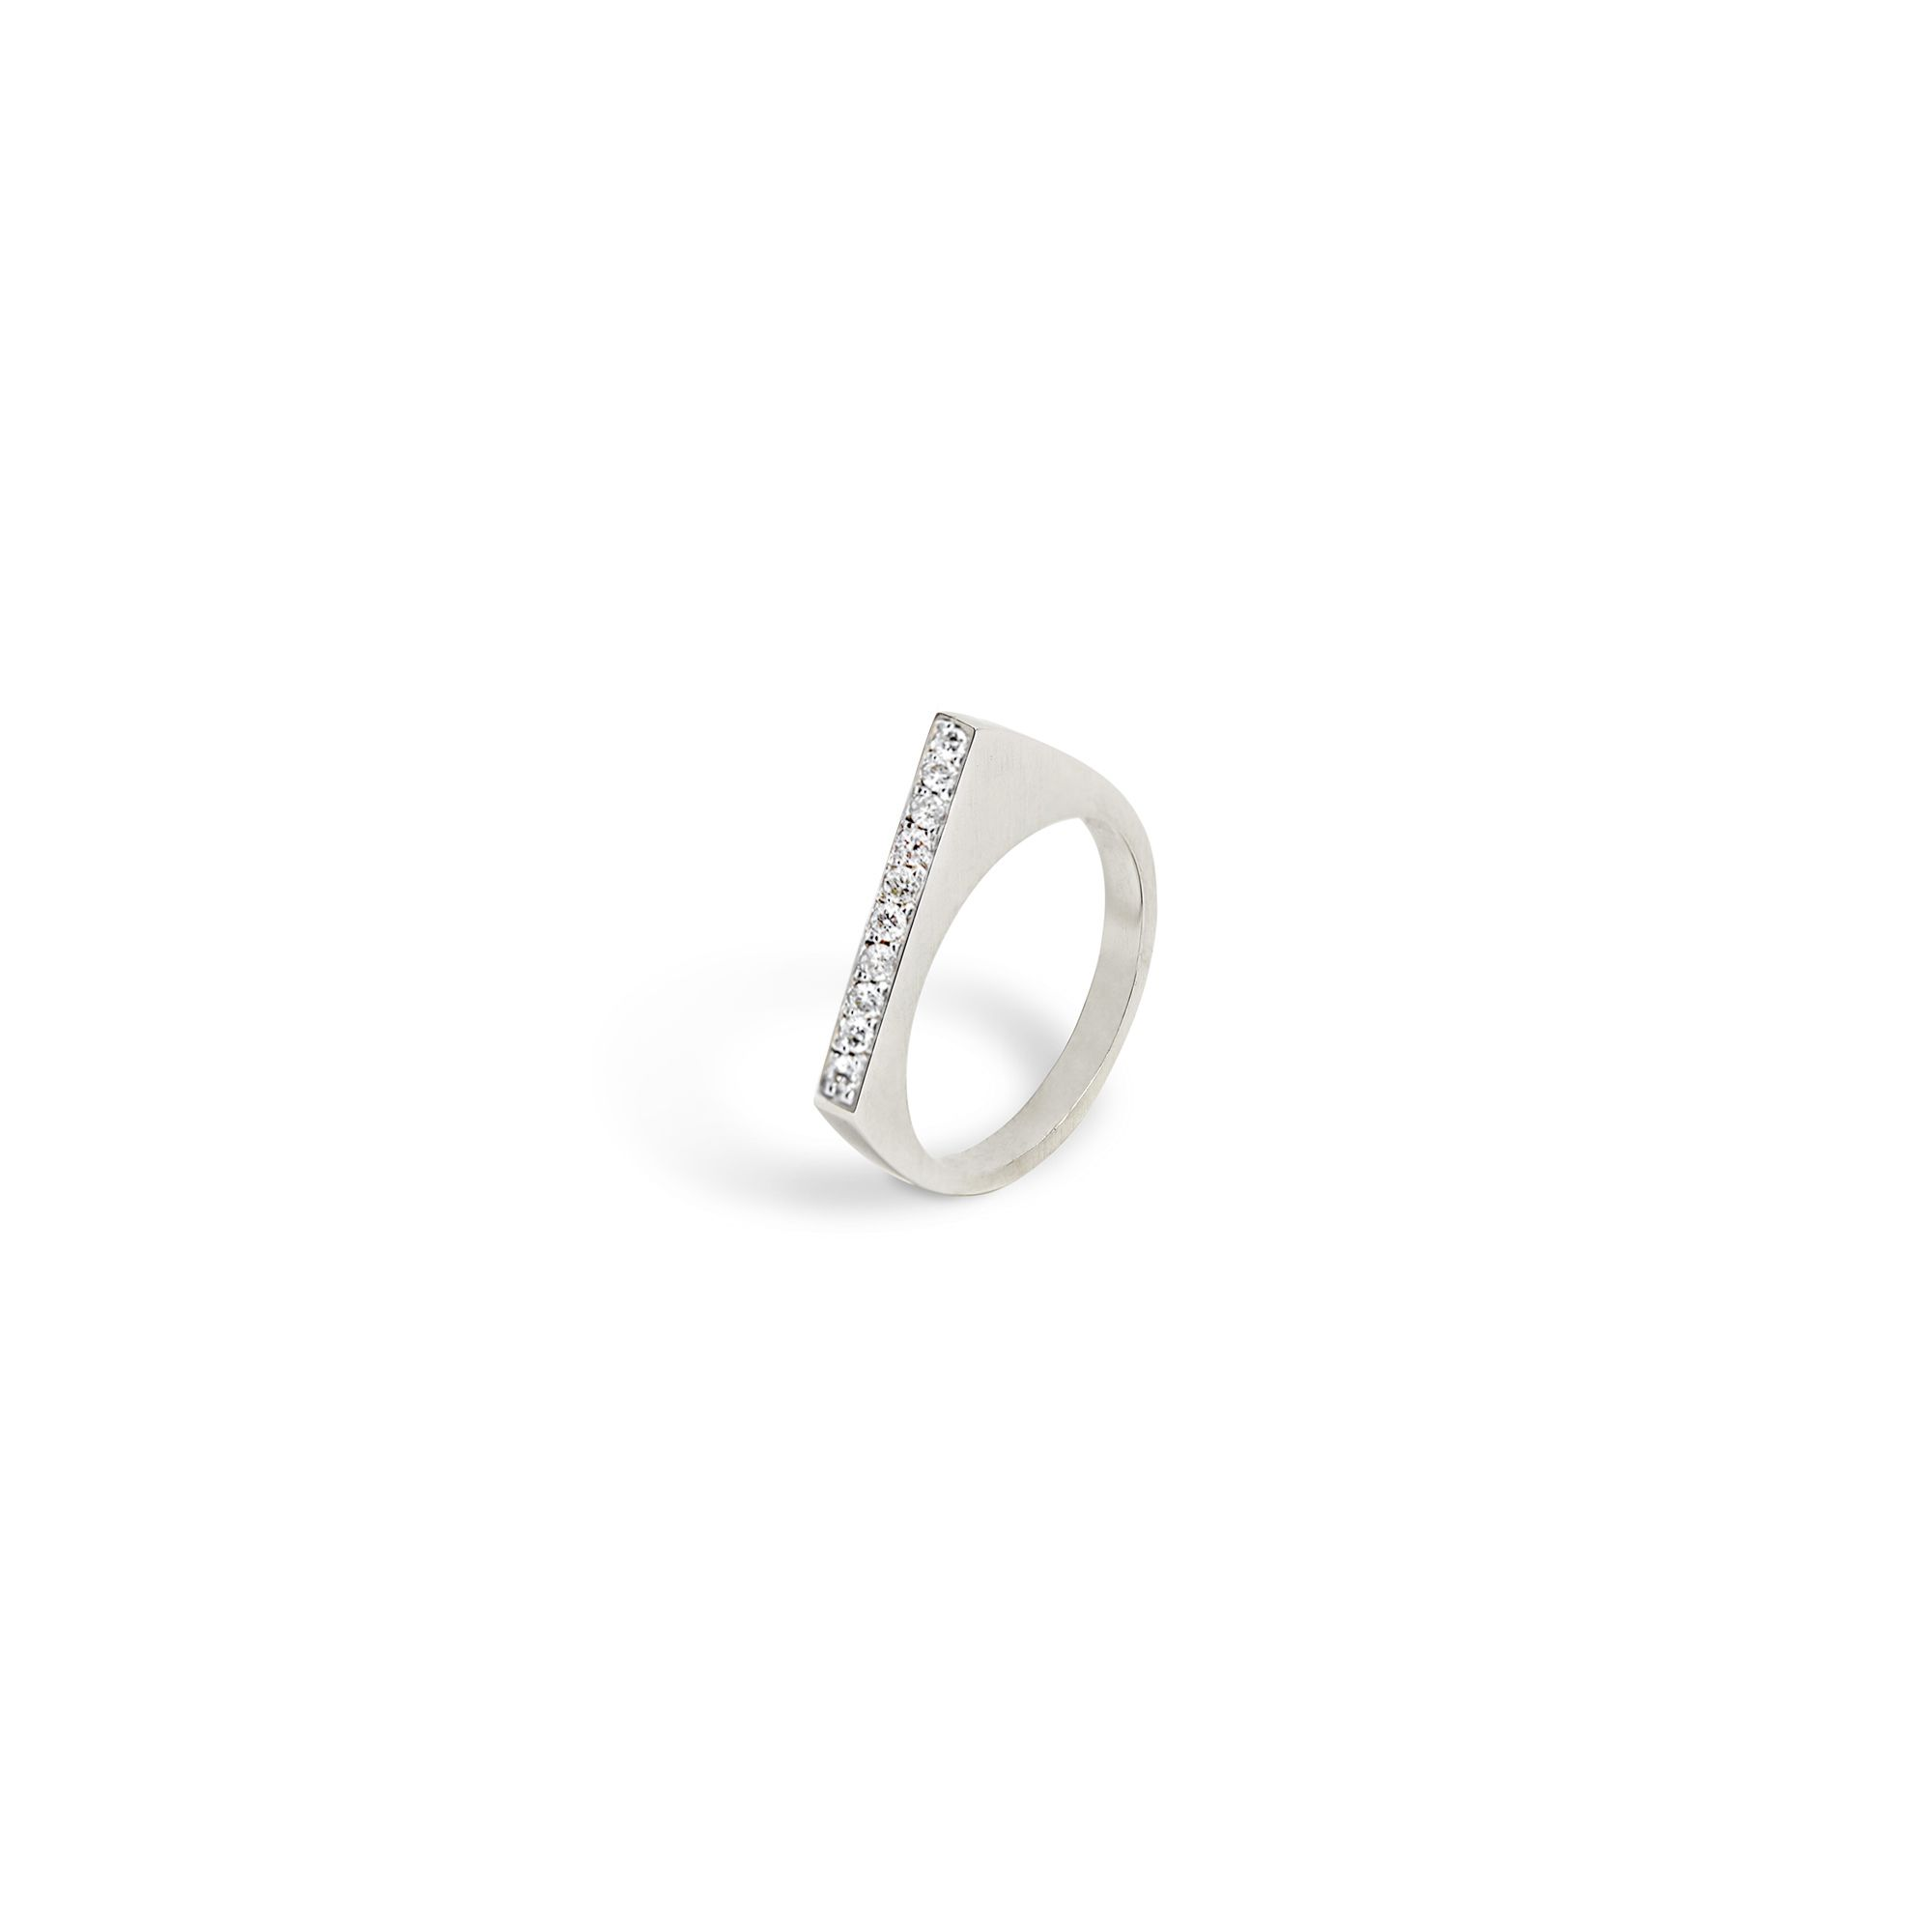 Rose gold modular 'Congiunzioni' point ring Ring in white gold and diamonds